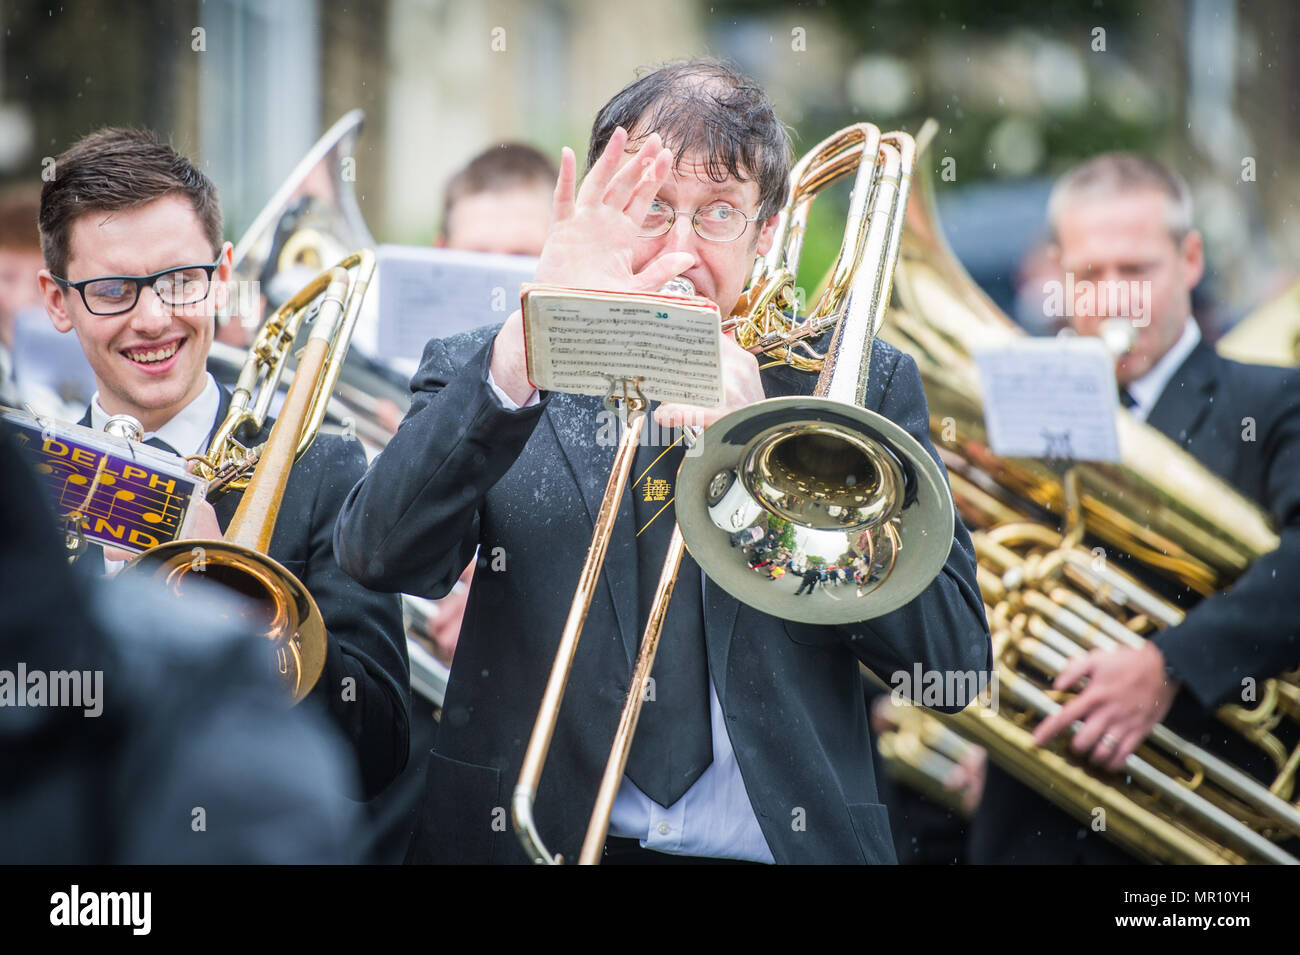 Delph, UK. 25th May 2018. A member of a brass band plays as they walk along the procession during the annual 'Whit Walks' through the village of Delph in the district of Saddleworth, Greater Manchester. Credit: Matthew Wilkinson/Alamy Live News Stock Photo